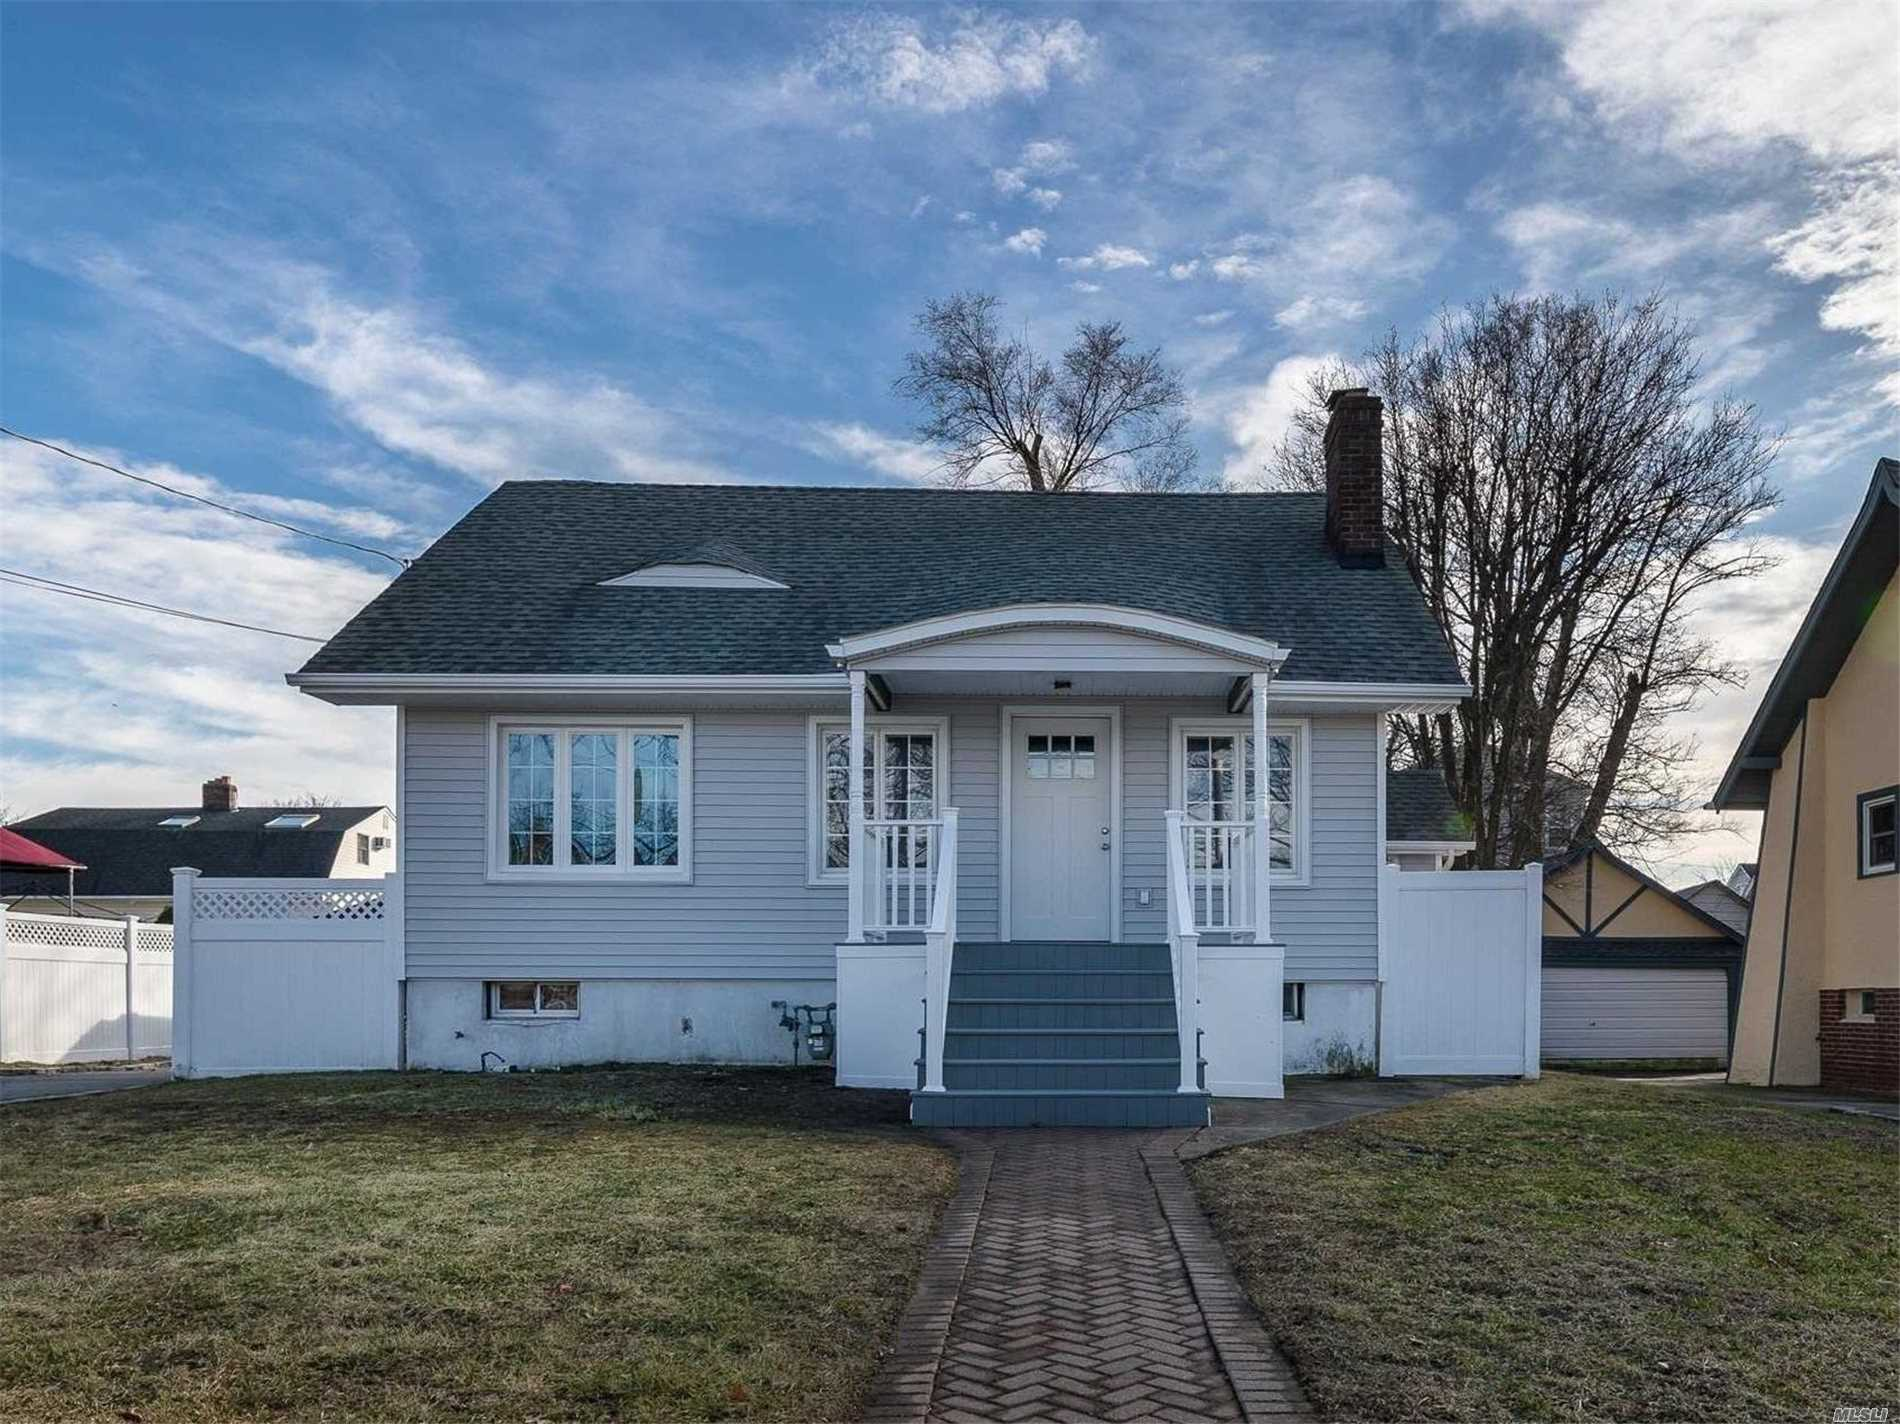 Renovated Cape On Quiet Street. Great Alternative To A Condo. Open Floor Plan. Beautiful Kitchen With Stainless Appliances & Island W/Seating. Double Vanity In Bath. Wood Fireplace. 60 X 100 Property. 2-Car Garage. Fenced In Backyard W/Patio And Fire-Pit. School 8 Around Corner, Close To Shopping, Lirr, Beaches & Restaurants!